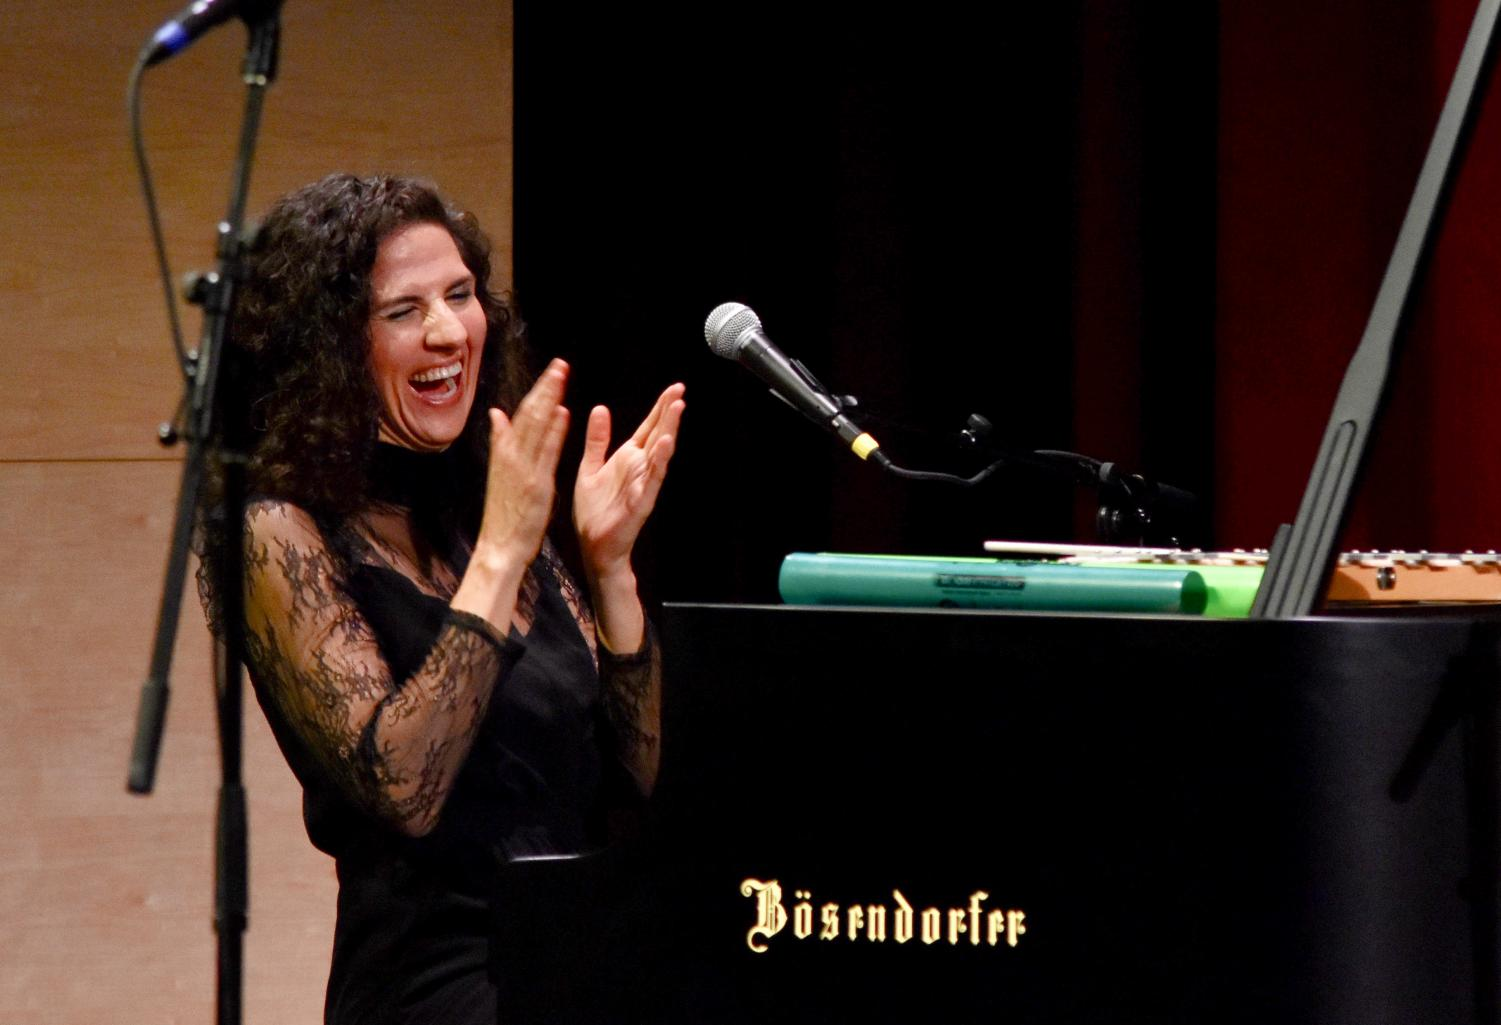 Juno Award winning jazz vocalist and pianist Laila Biali claps after performing one of her original works at the first Concert Series show last Friday night. In addition to her performance, Biali led workshops with jazz band, Downbeat and the upper school orchestra on Thursday and Friday.